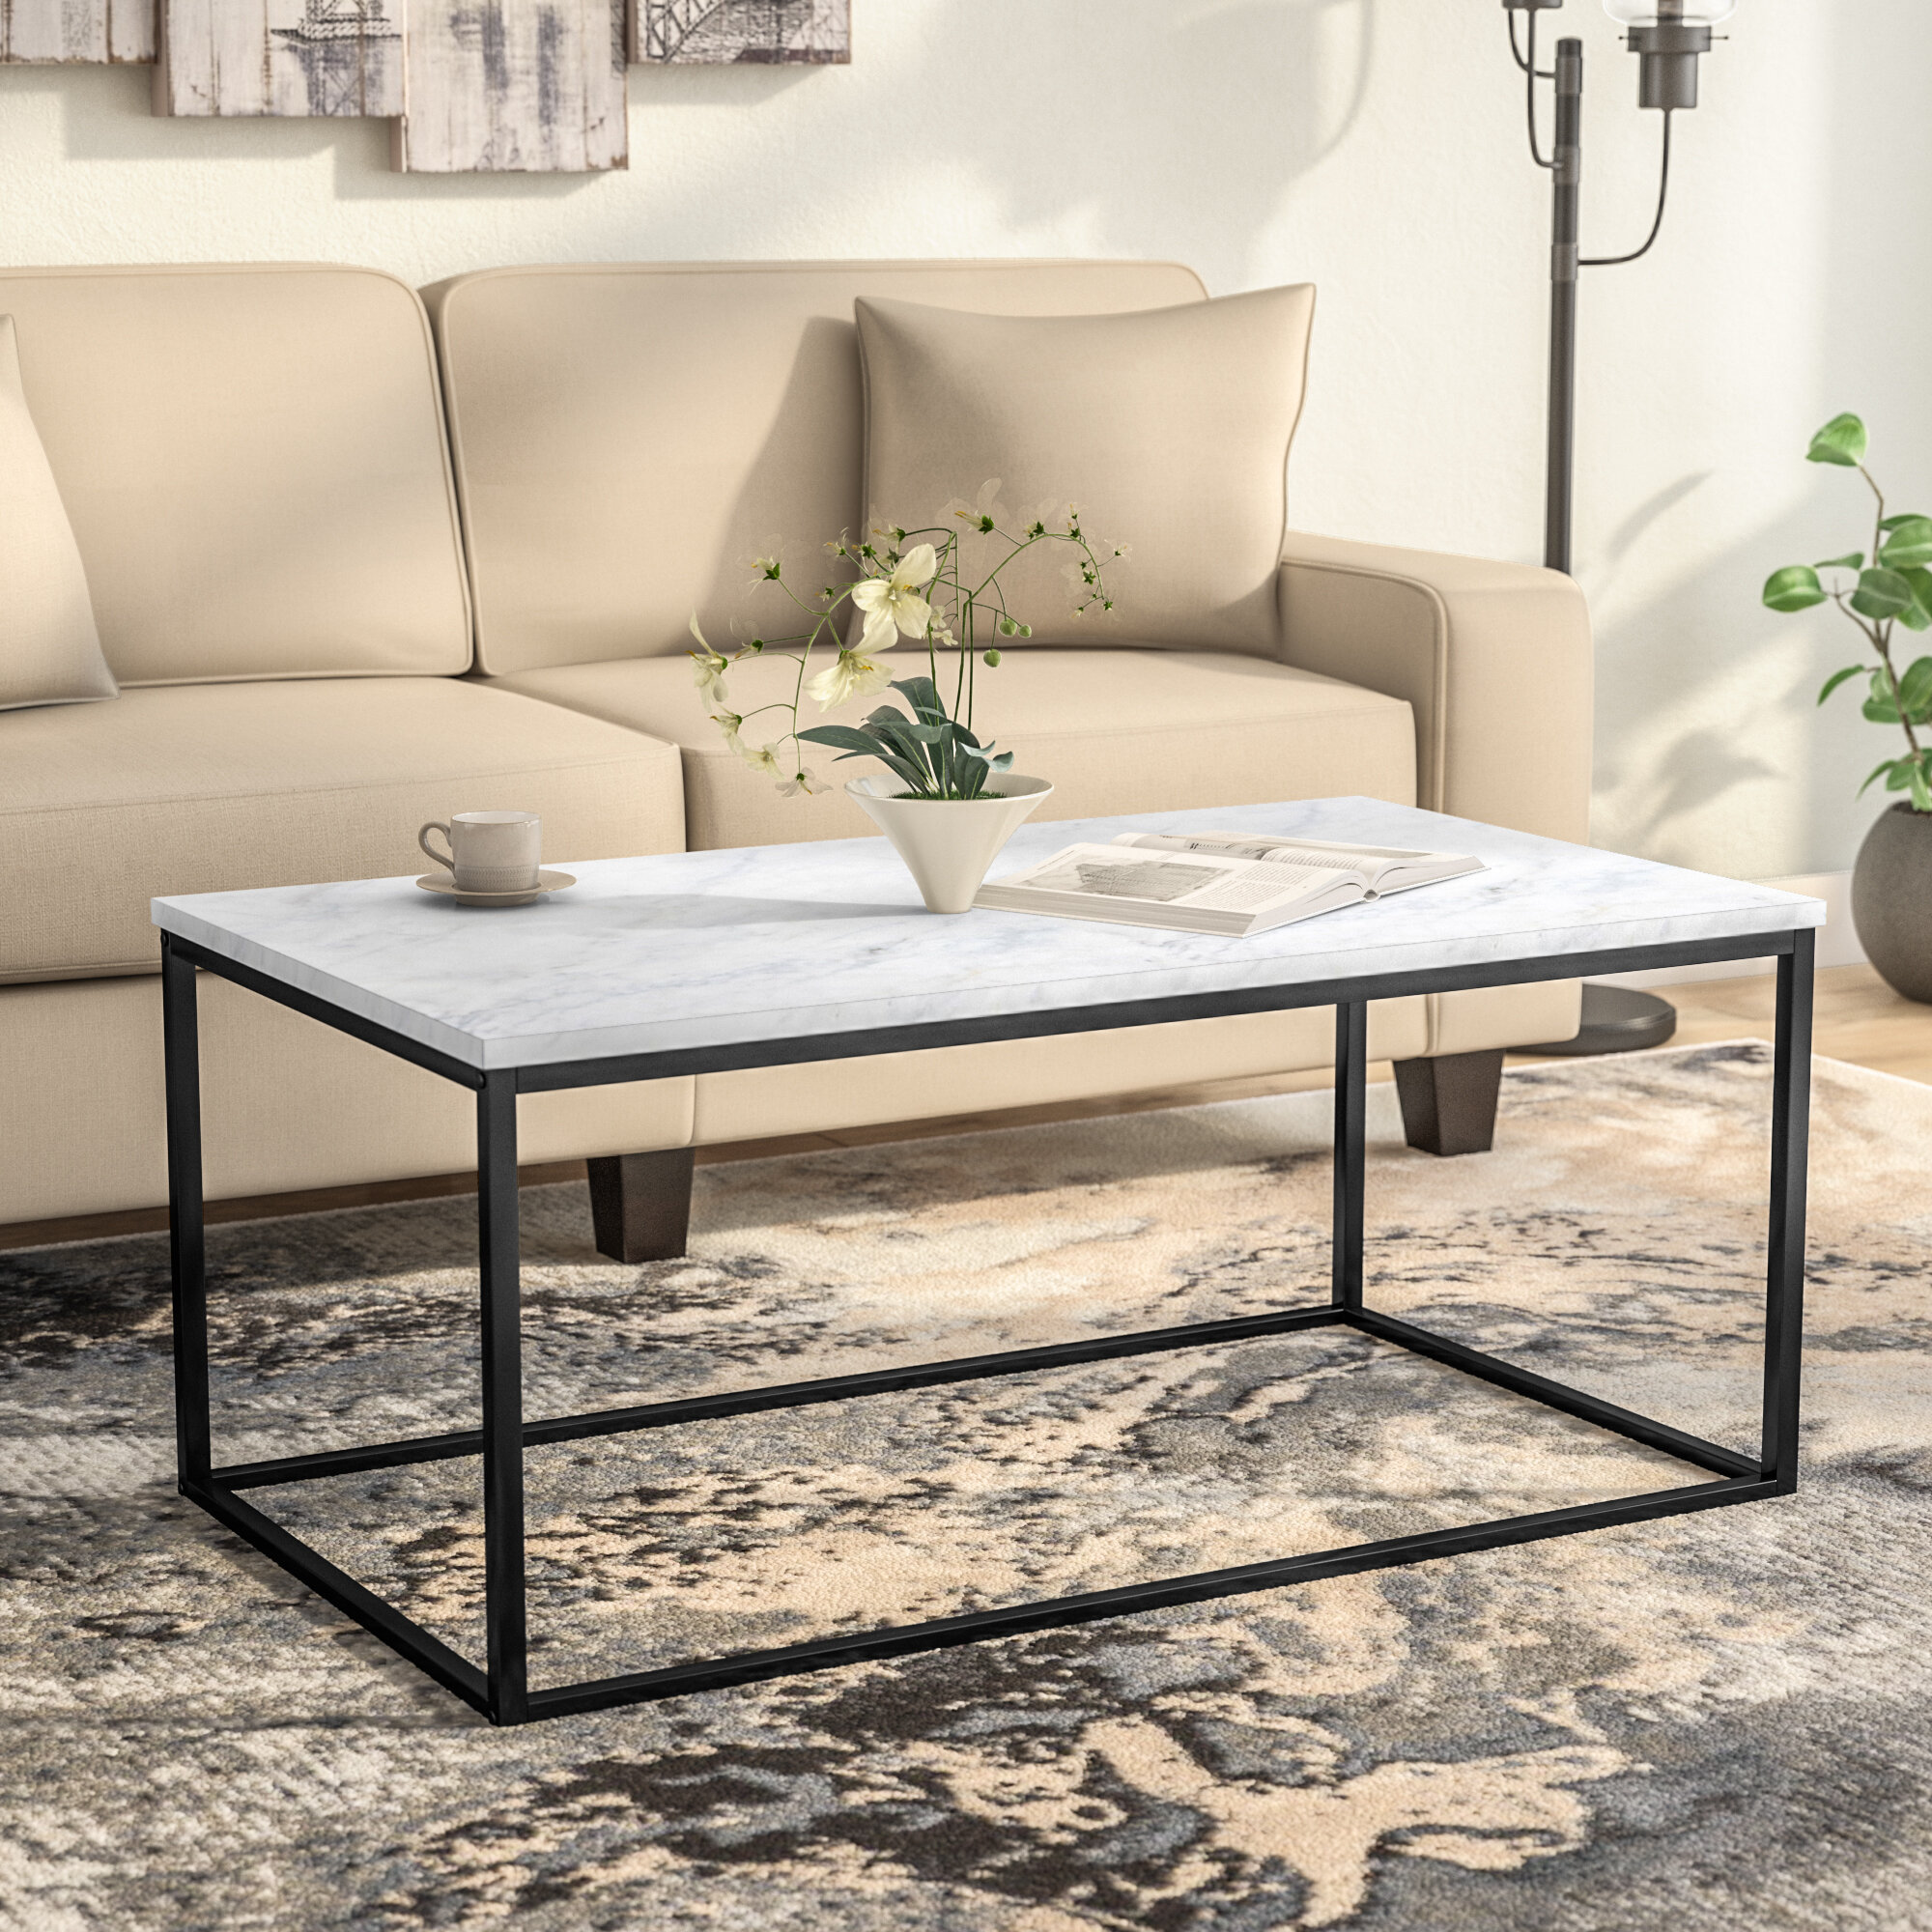 758755affff69 Williston Forge Arianna Coffee Table   Reviews